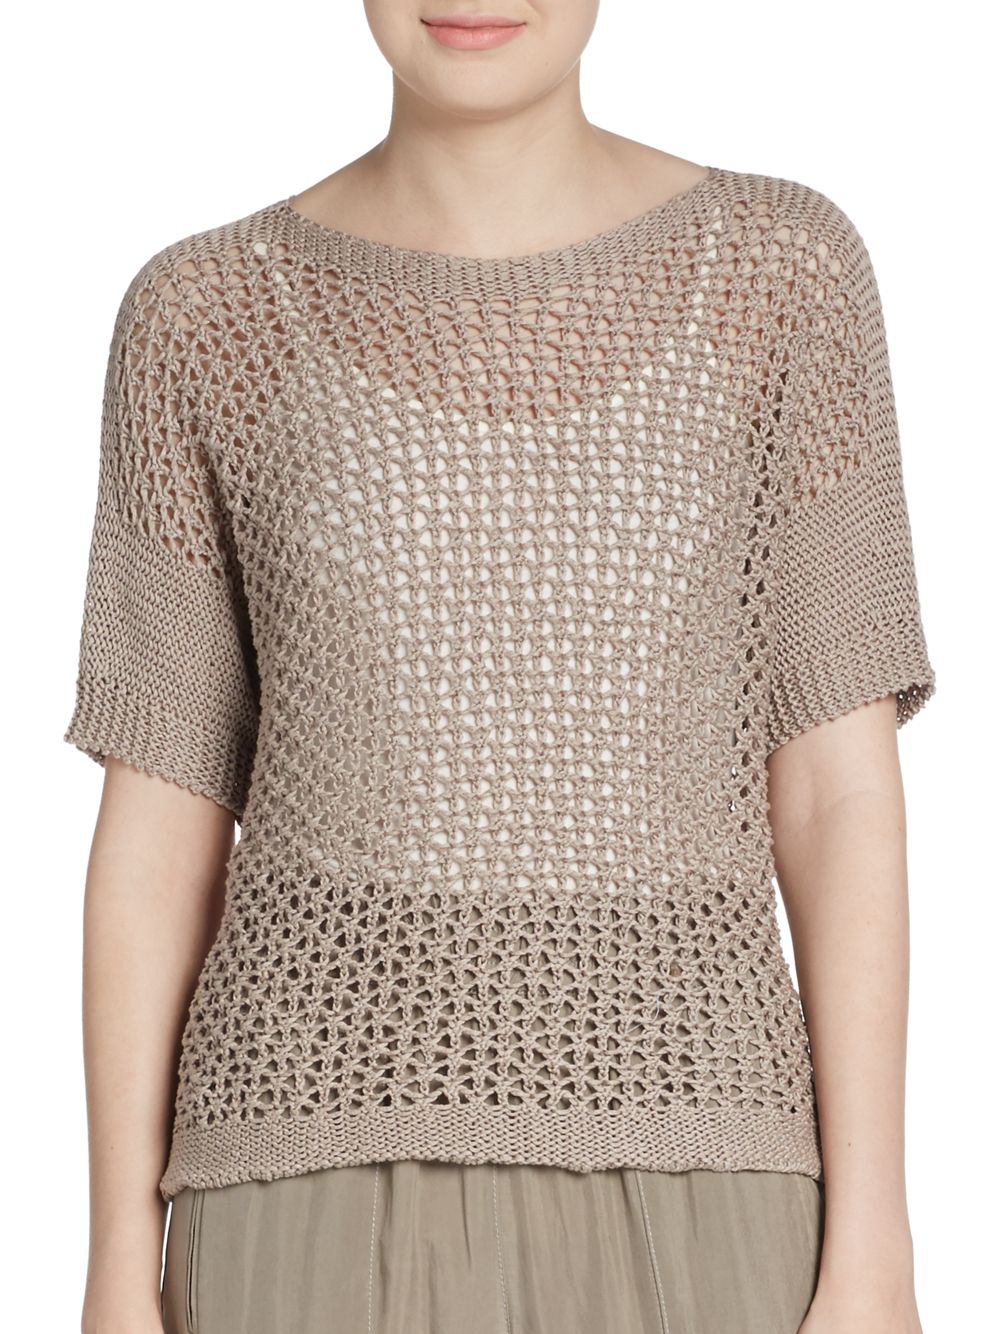 Peserico Open Weave Knit Pullover in Natural | Lyst